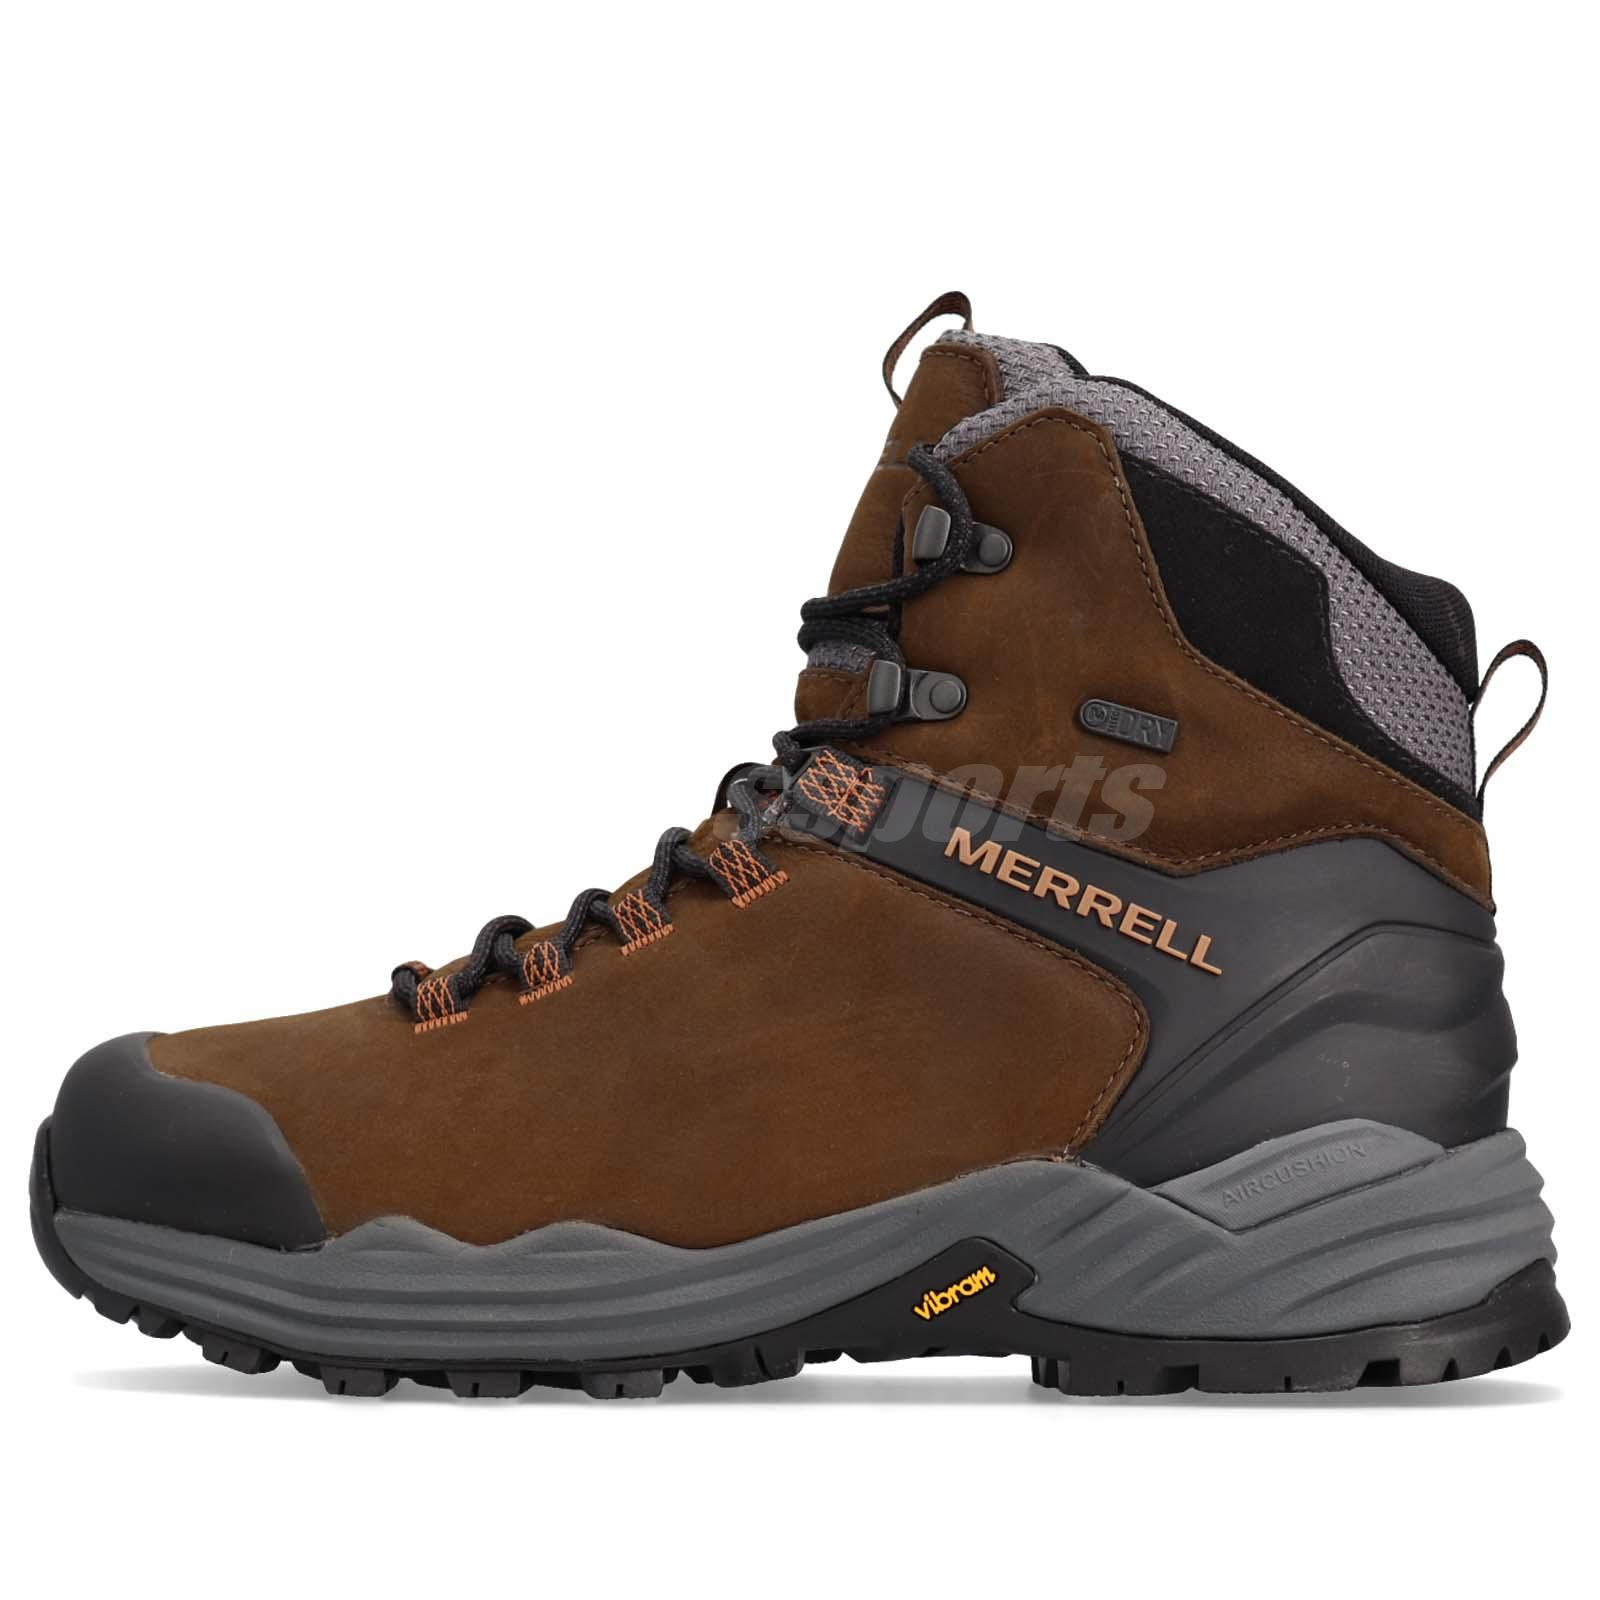 ffc5e7df38b Details about Merrell Phaserbound 2 Brown Grey Black Men Outdoors Hiking  Shoes Boots J48571